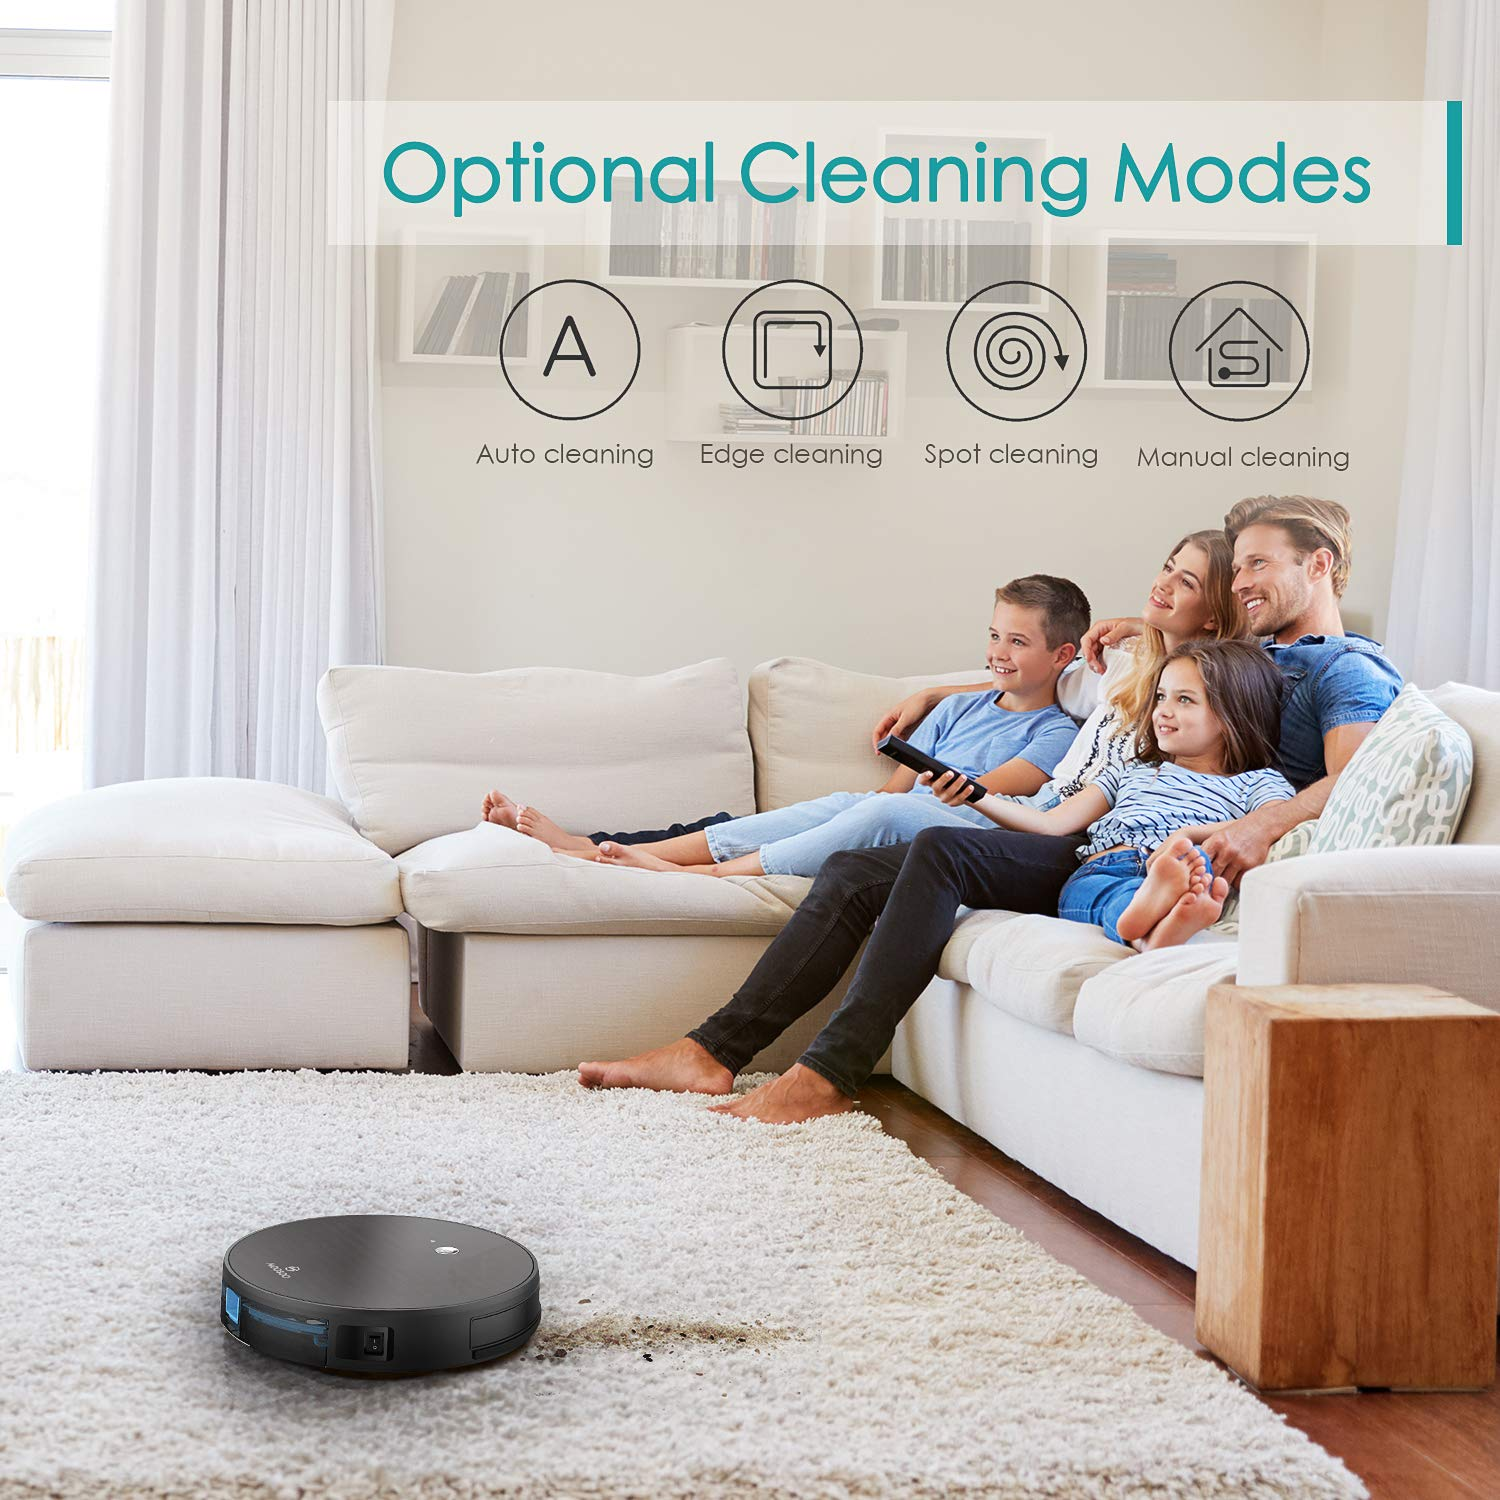 MOOSOO Robot Vacuum Cleaner, 1800PA Robotic Vacuum, Wi-Fi Connected, App Control, Smart Navigation, Self-Charging, Compatible with Alexa Cleans Hard Floor to Carpets